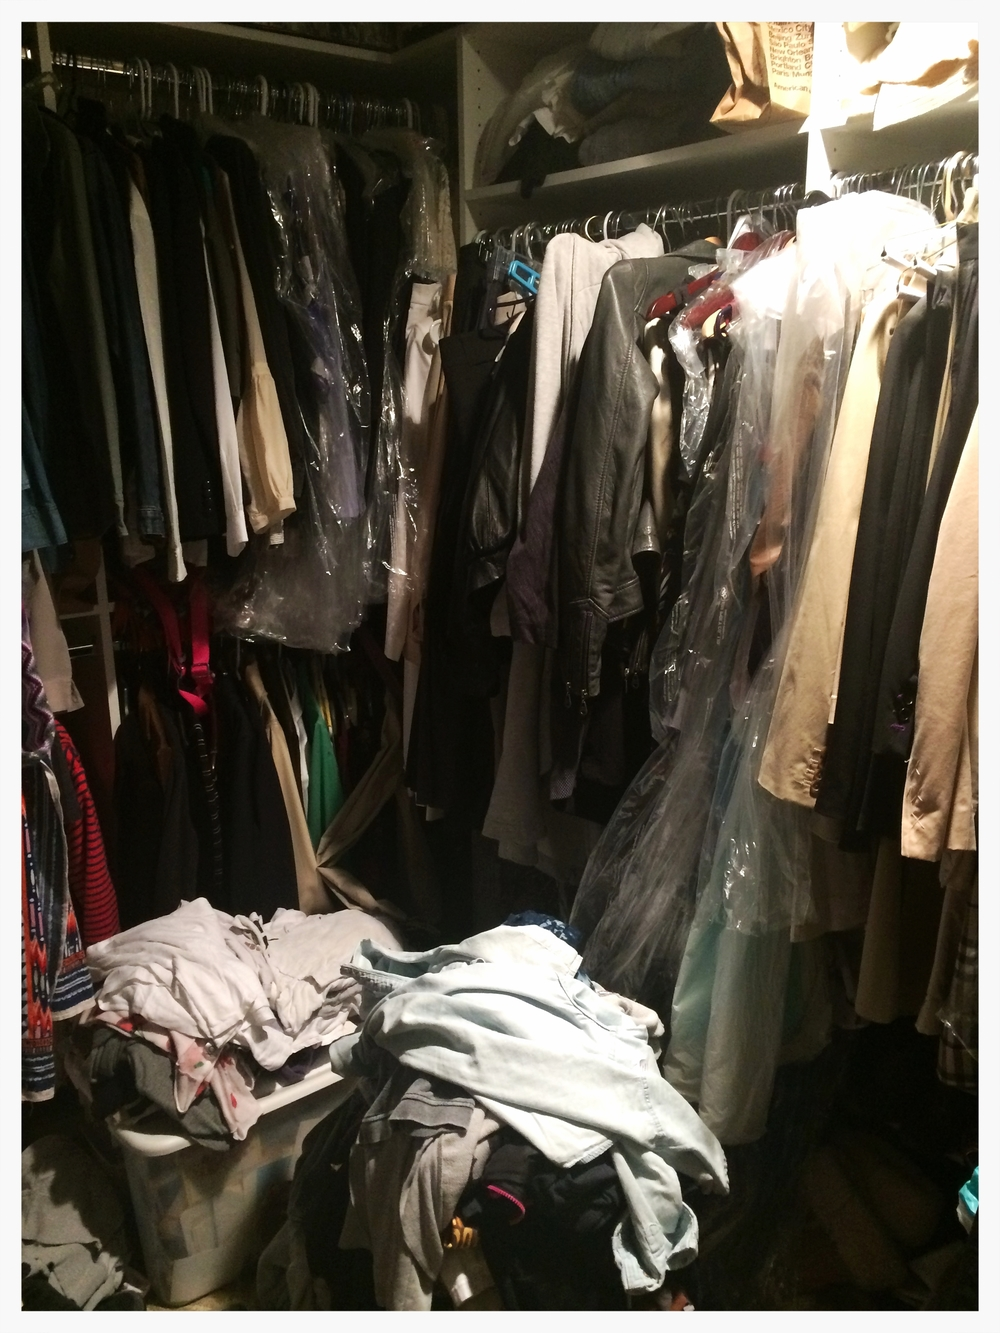 CLOSET EDIT: BEFORE